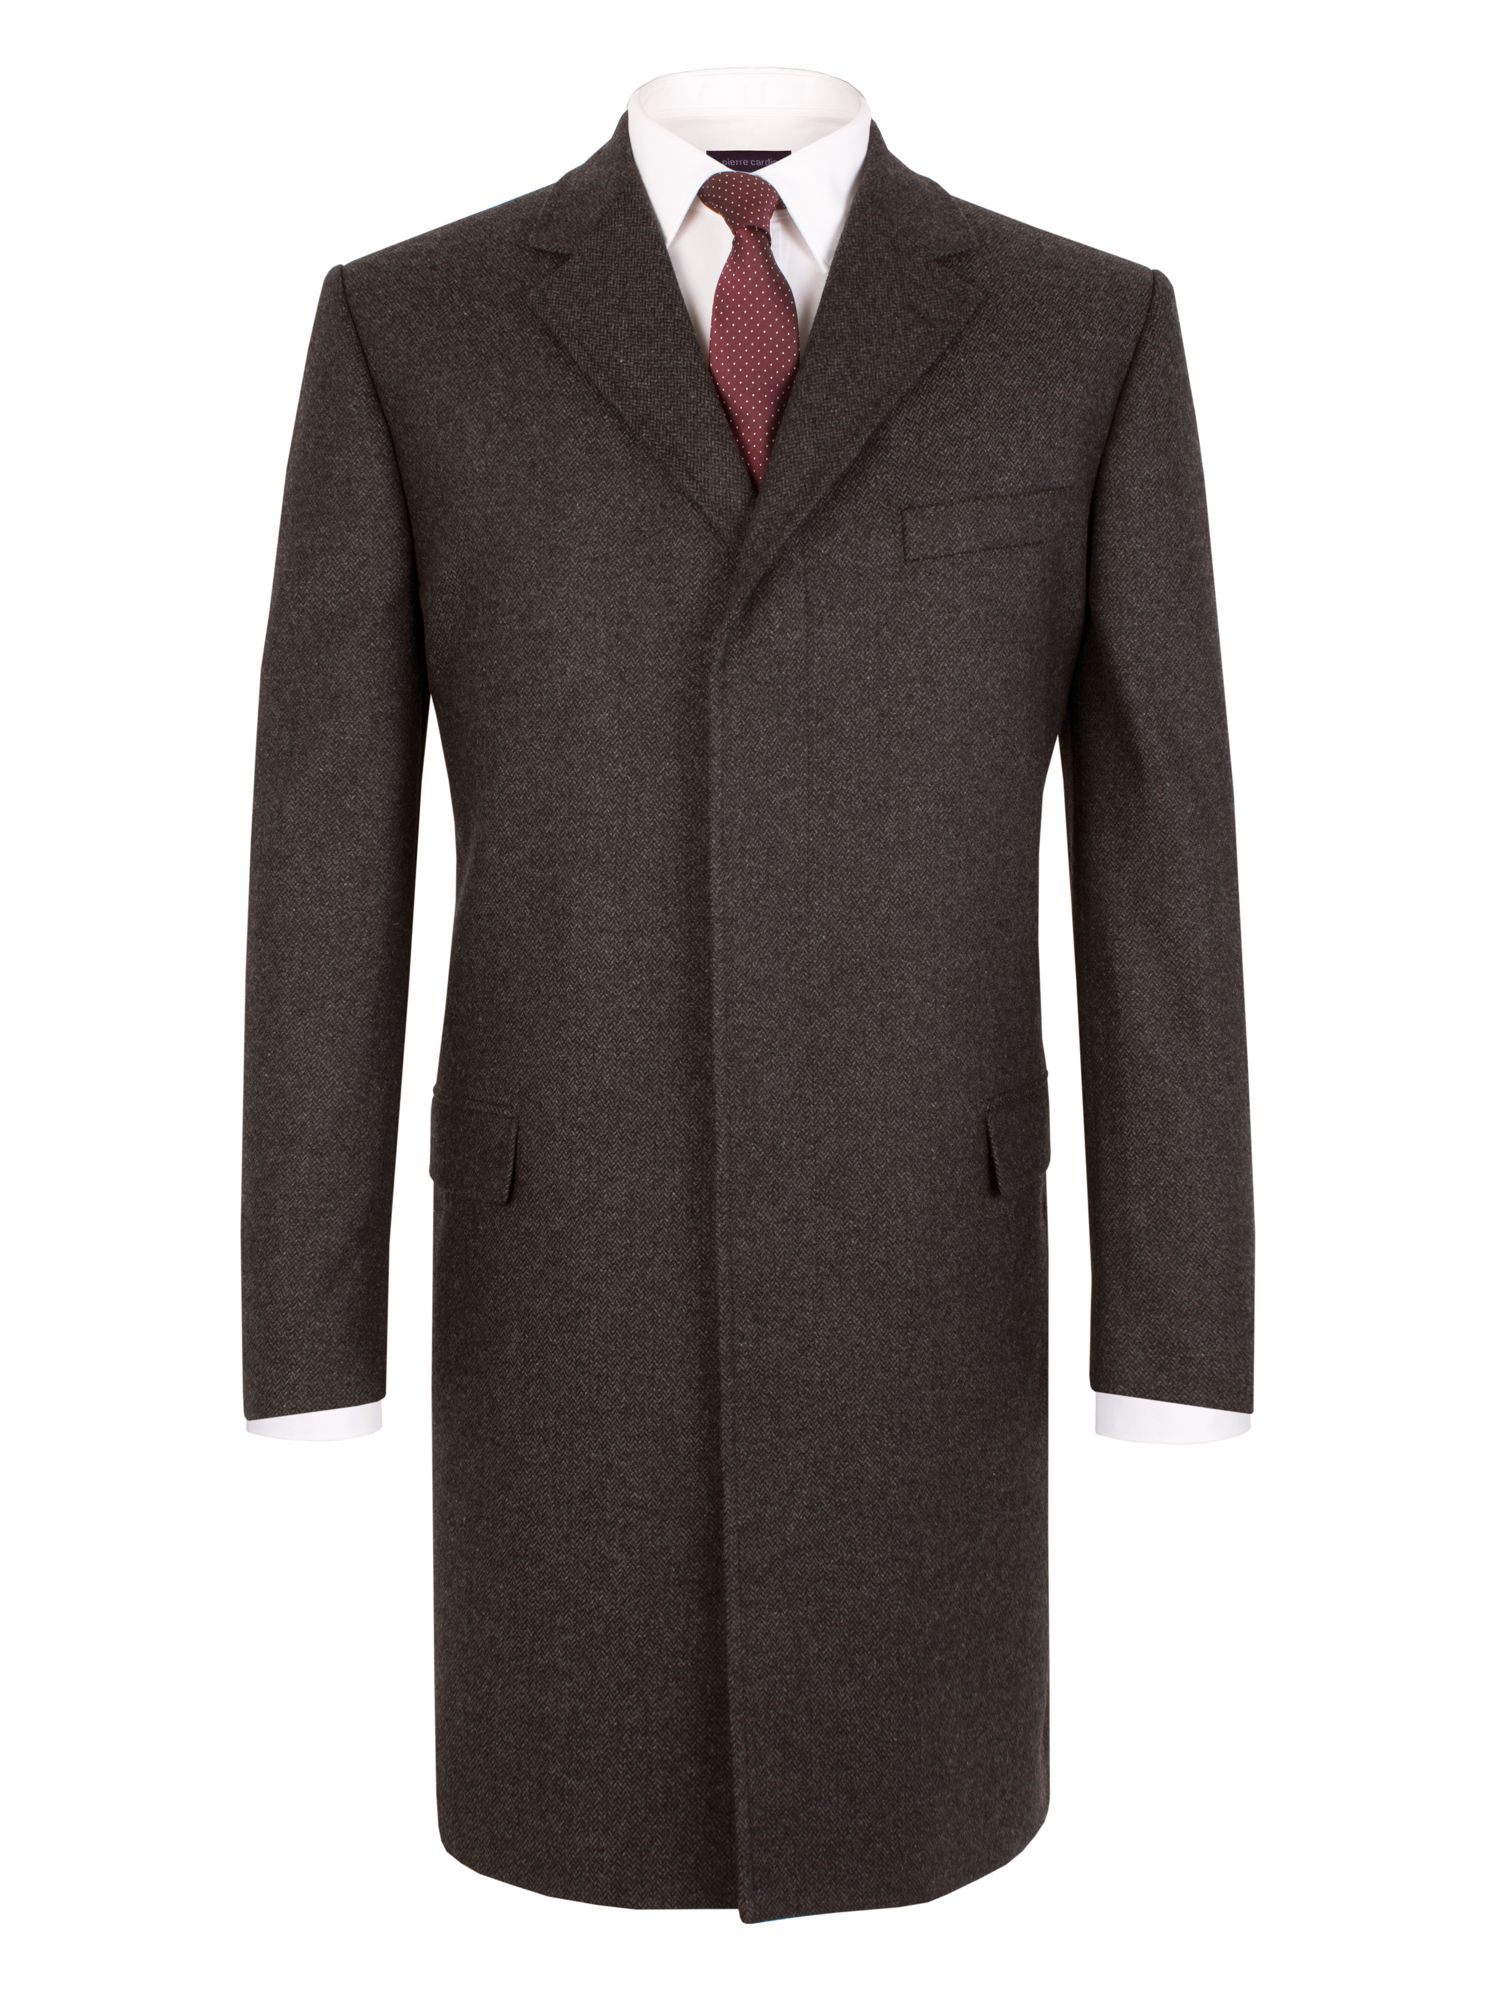 Overcoat buttons